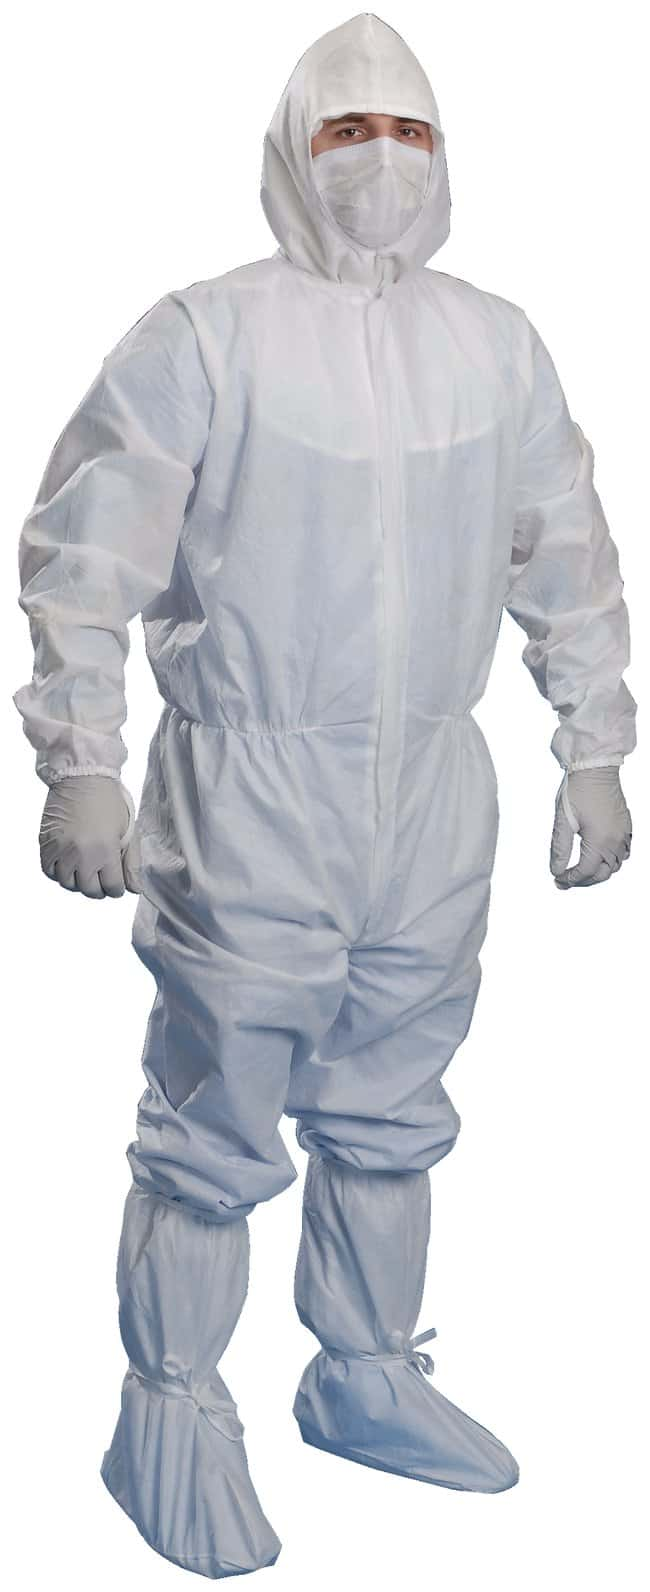 Kimberly-Clark Professional™ Kimtech Pure™ A5 Sterile Cleanroom Apparel